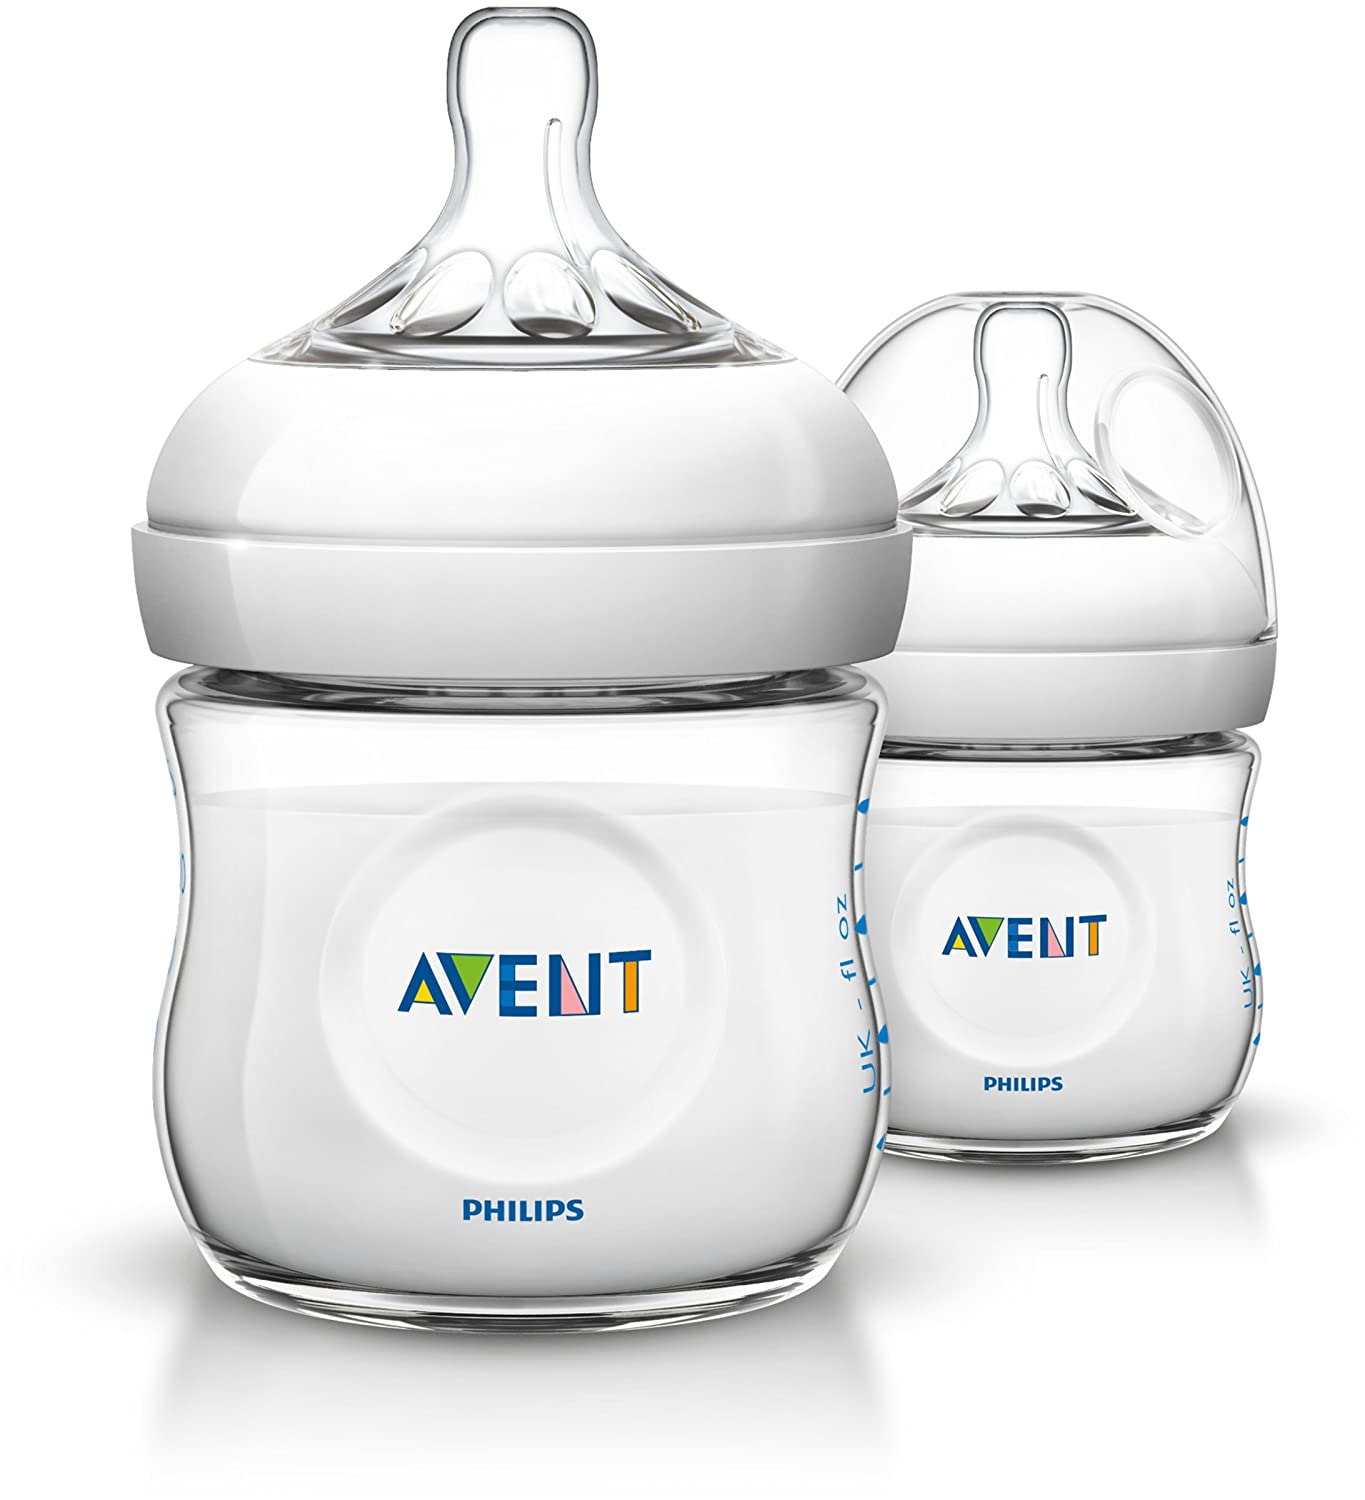 Philips Avent SCF690/27 - Pack de 2 biberones, tetina suave y flexible, anticó licos, PP 0% BPA, 125 ml, color transparente anticólicos